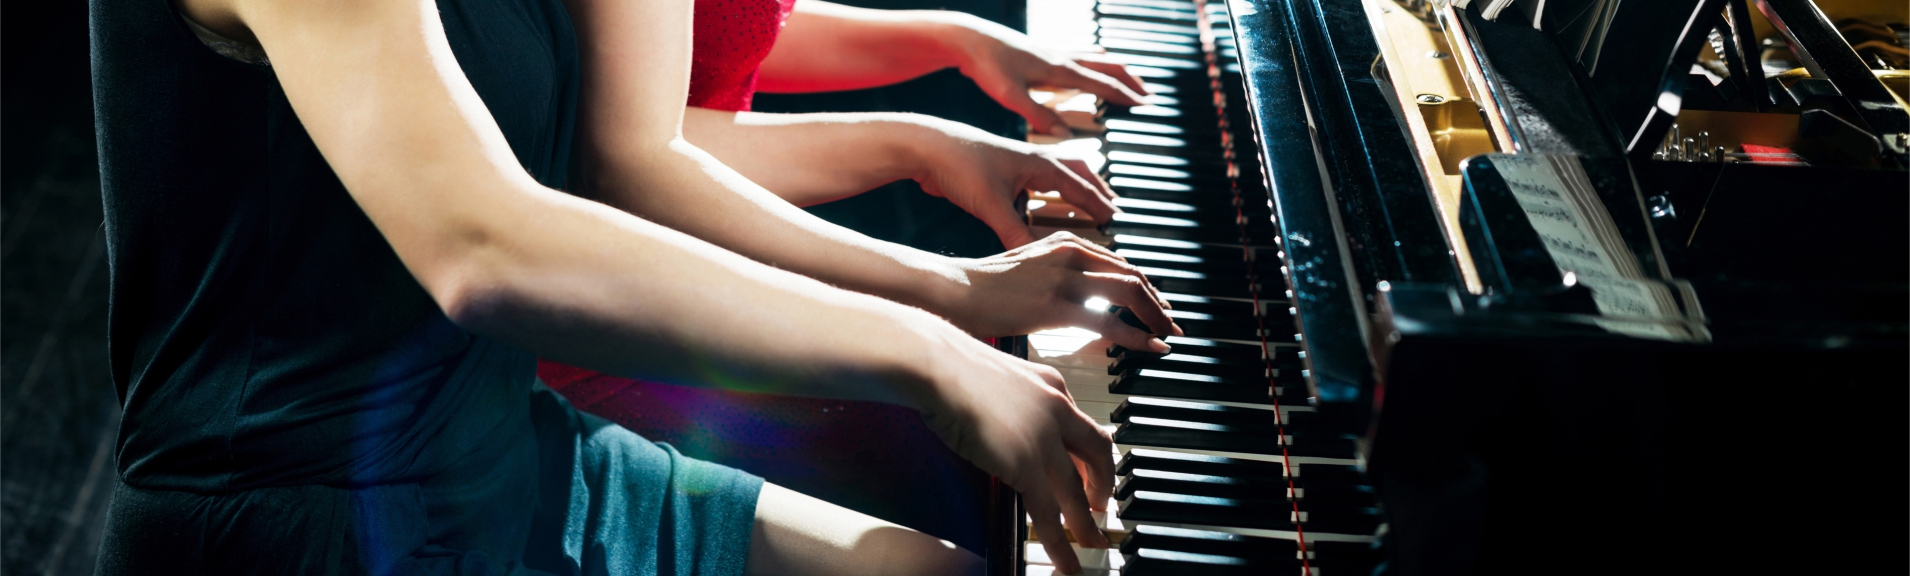 Two people playing piano